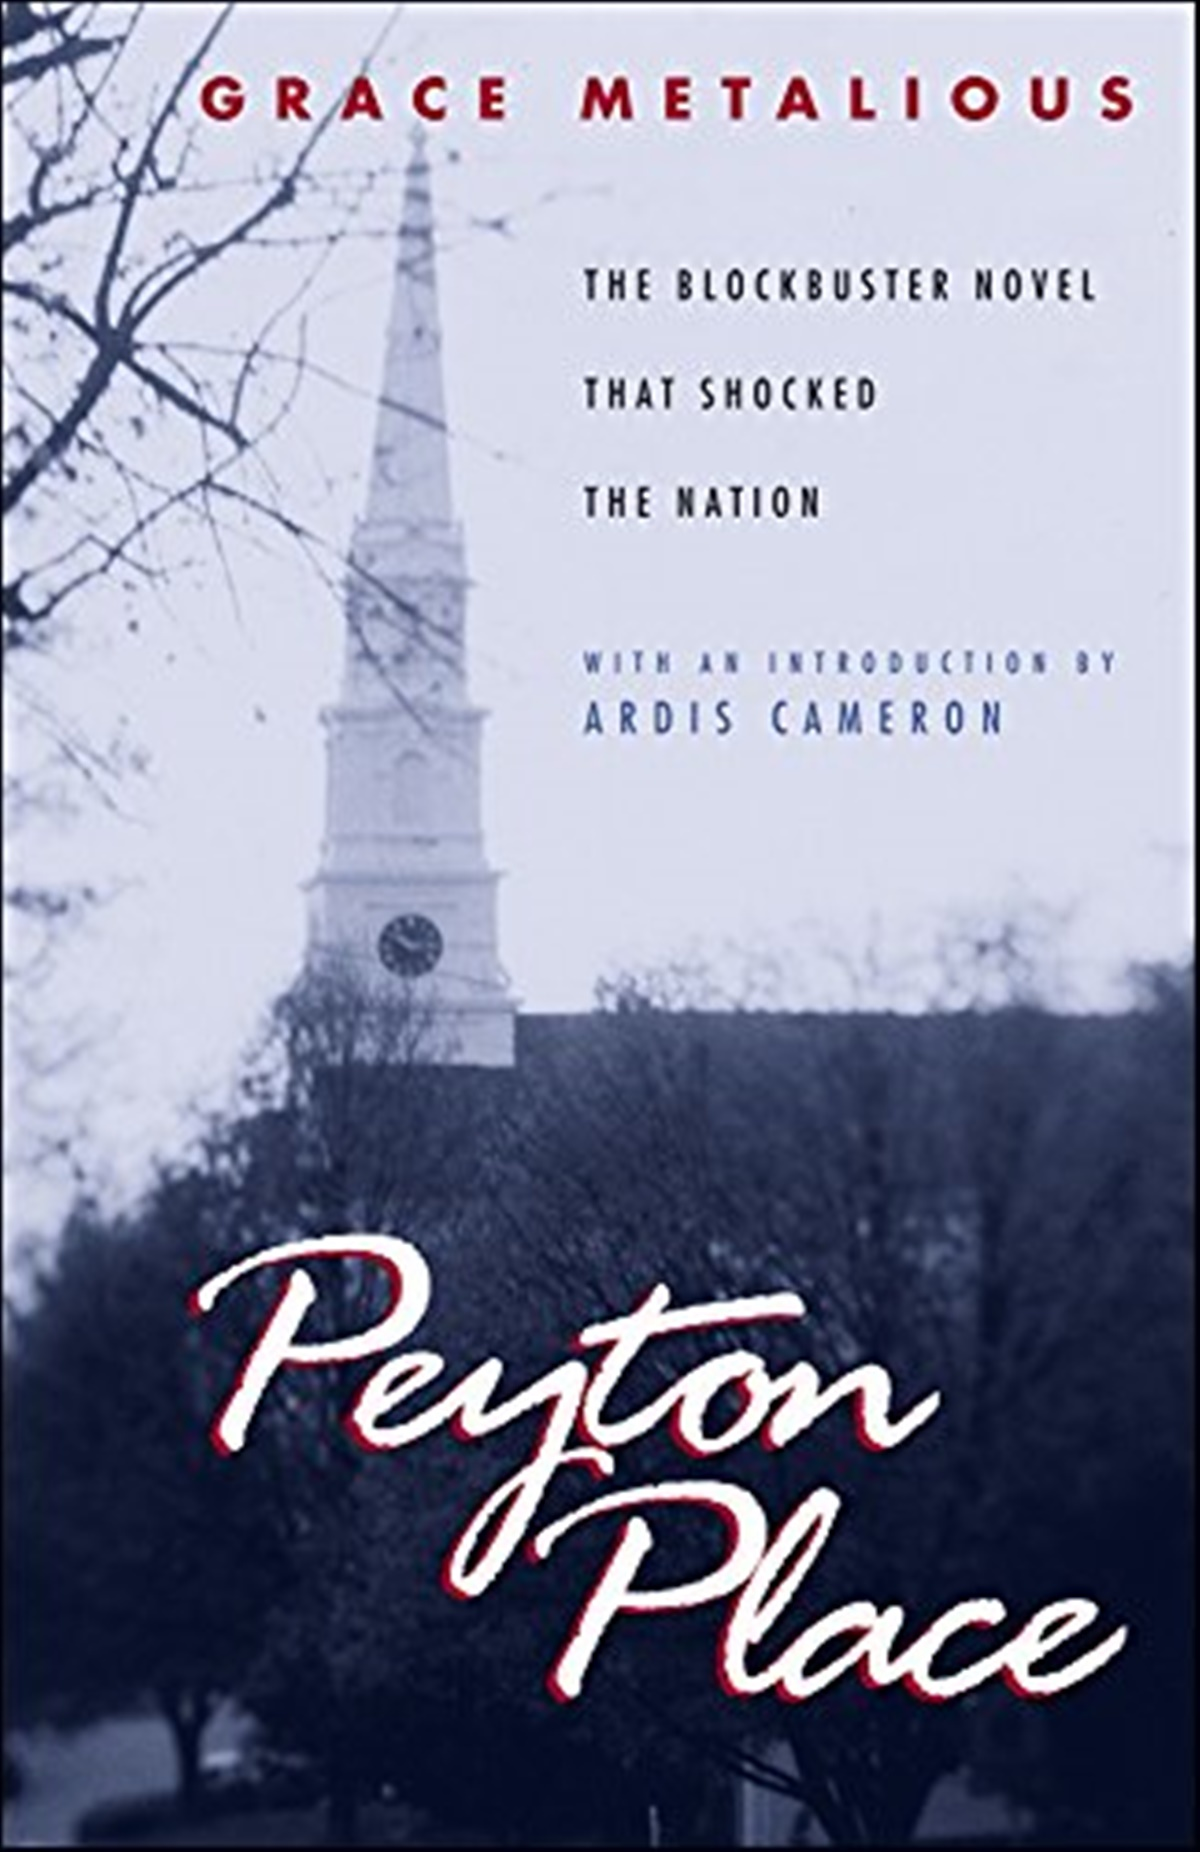 Best Trashy Romance Novels, cover of Peyton Place by Grace Metalious, books